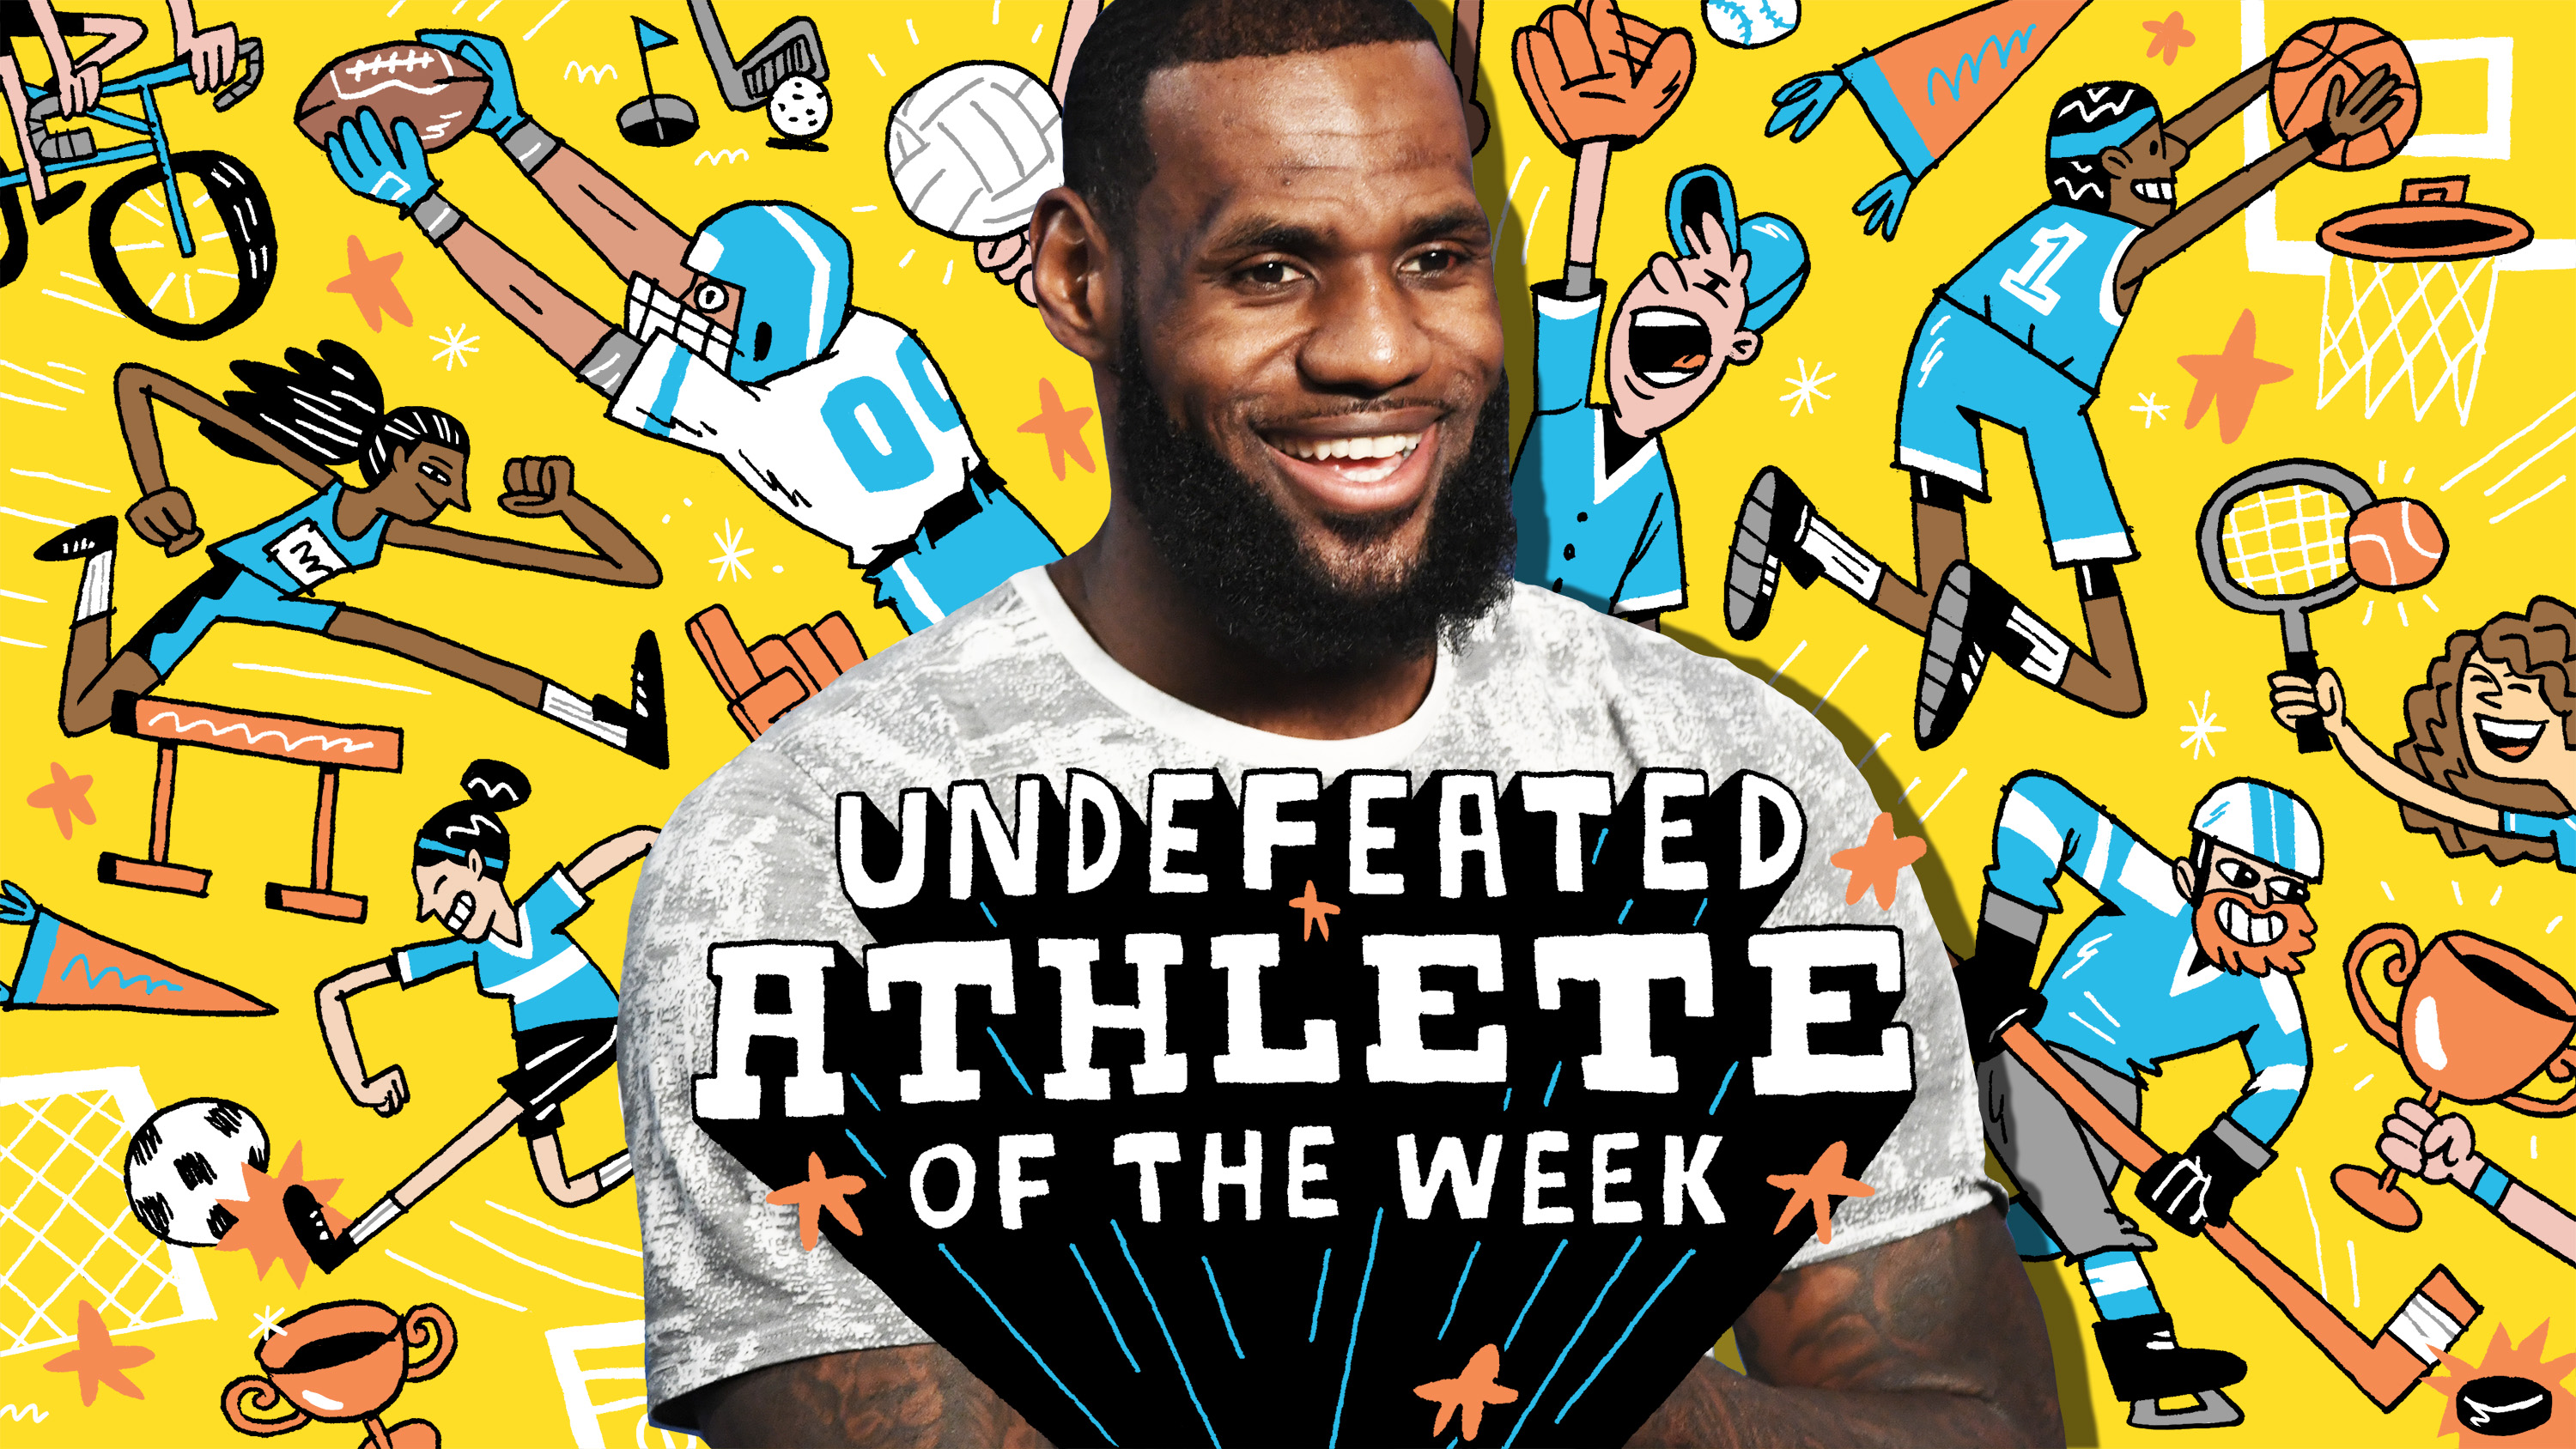 68ccc912ddc https   theundefeated.com kevindurant-2  2018-07-26T21 19 49Z https ...